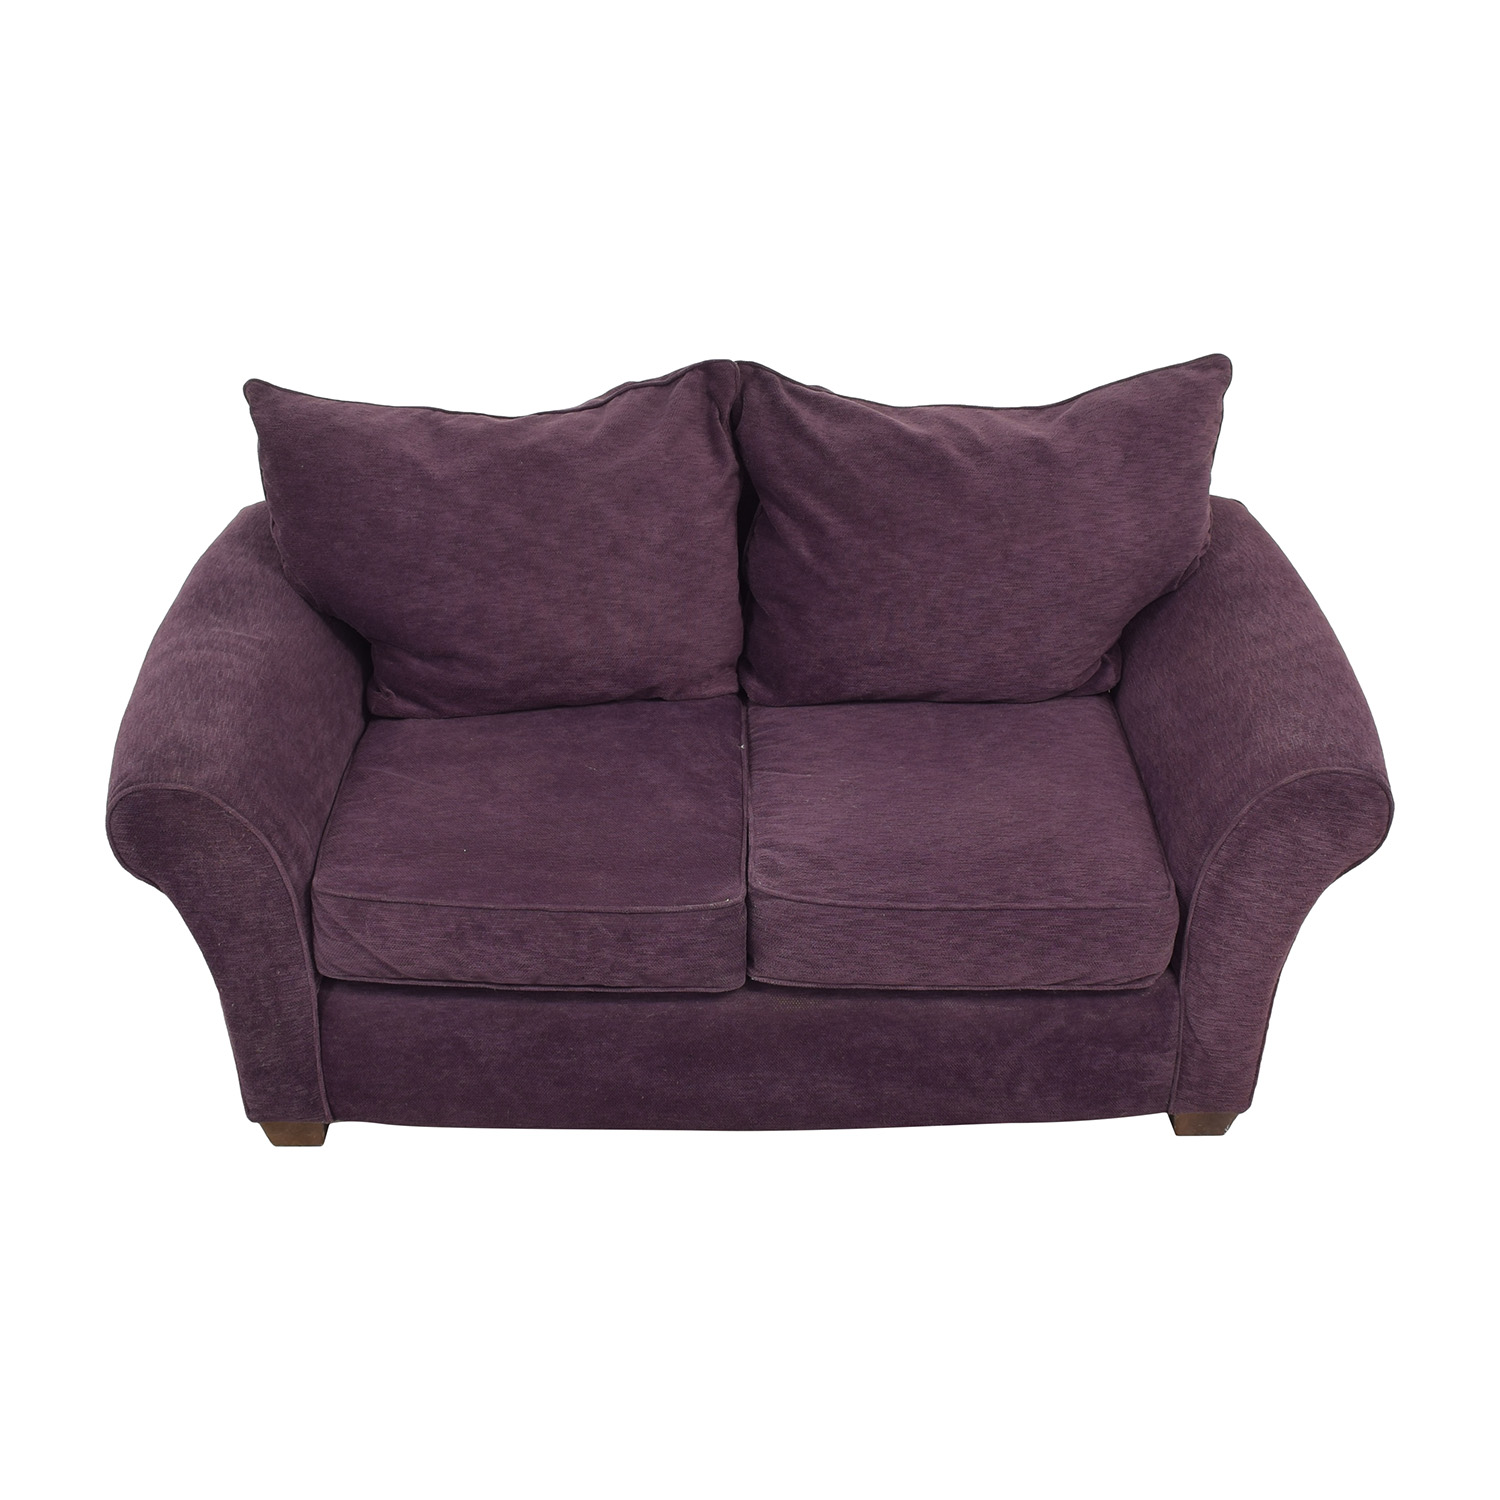 Alan White Alan White Roll Arm Loveseat coupon